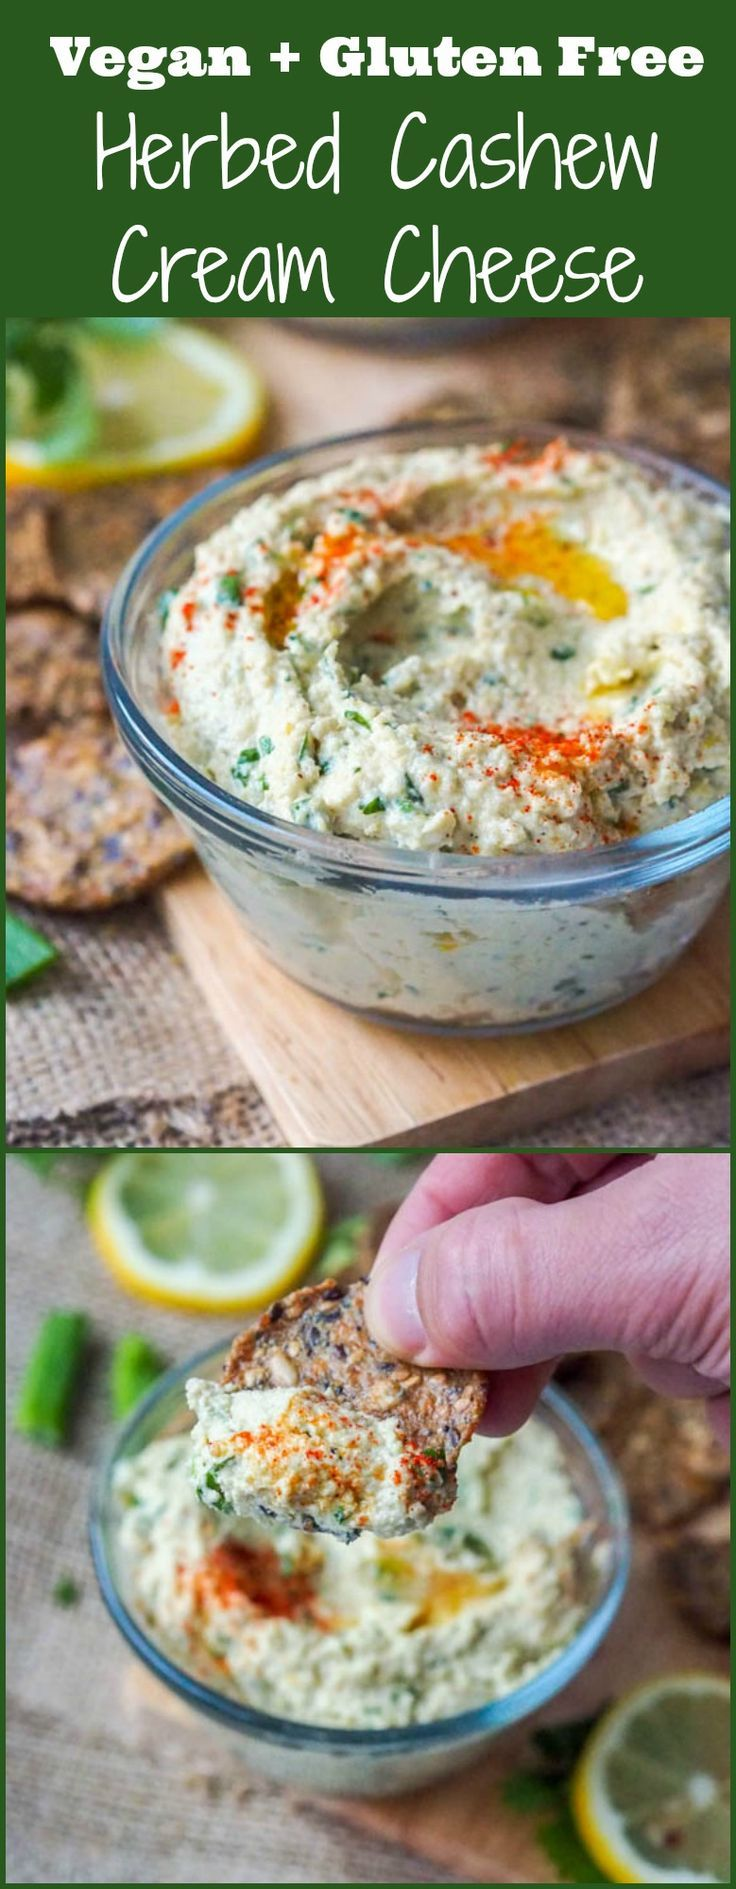 Six ingredient vegan cream cheese that is herb flavored with scallions and cilantro. GF + Paleo too. Makes for a perfect spread or dip for crackers. The best vegan cheese alternative that is also home made from natural ingredients! A family favorite! #vegan #glutenfree #creamcheese #vegancheese #paleo